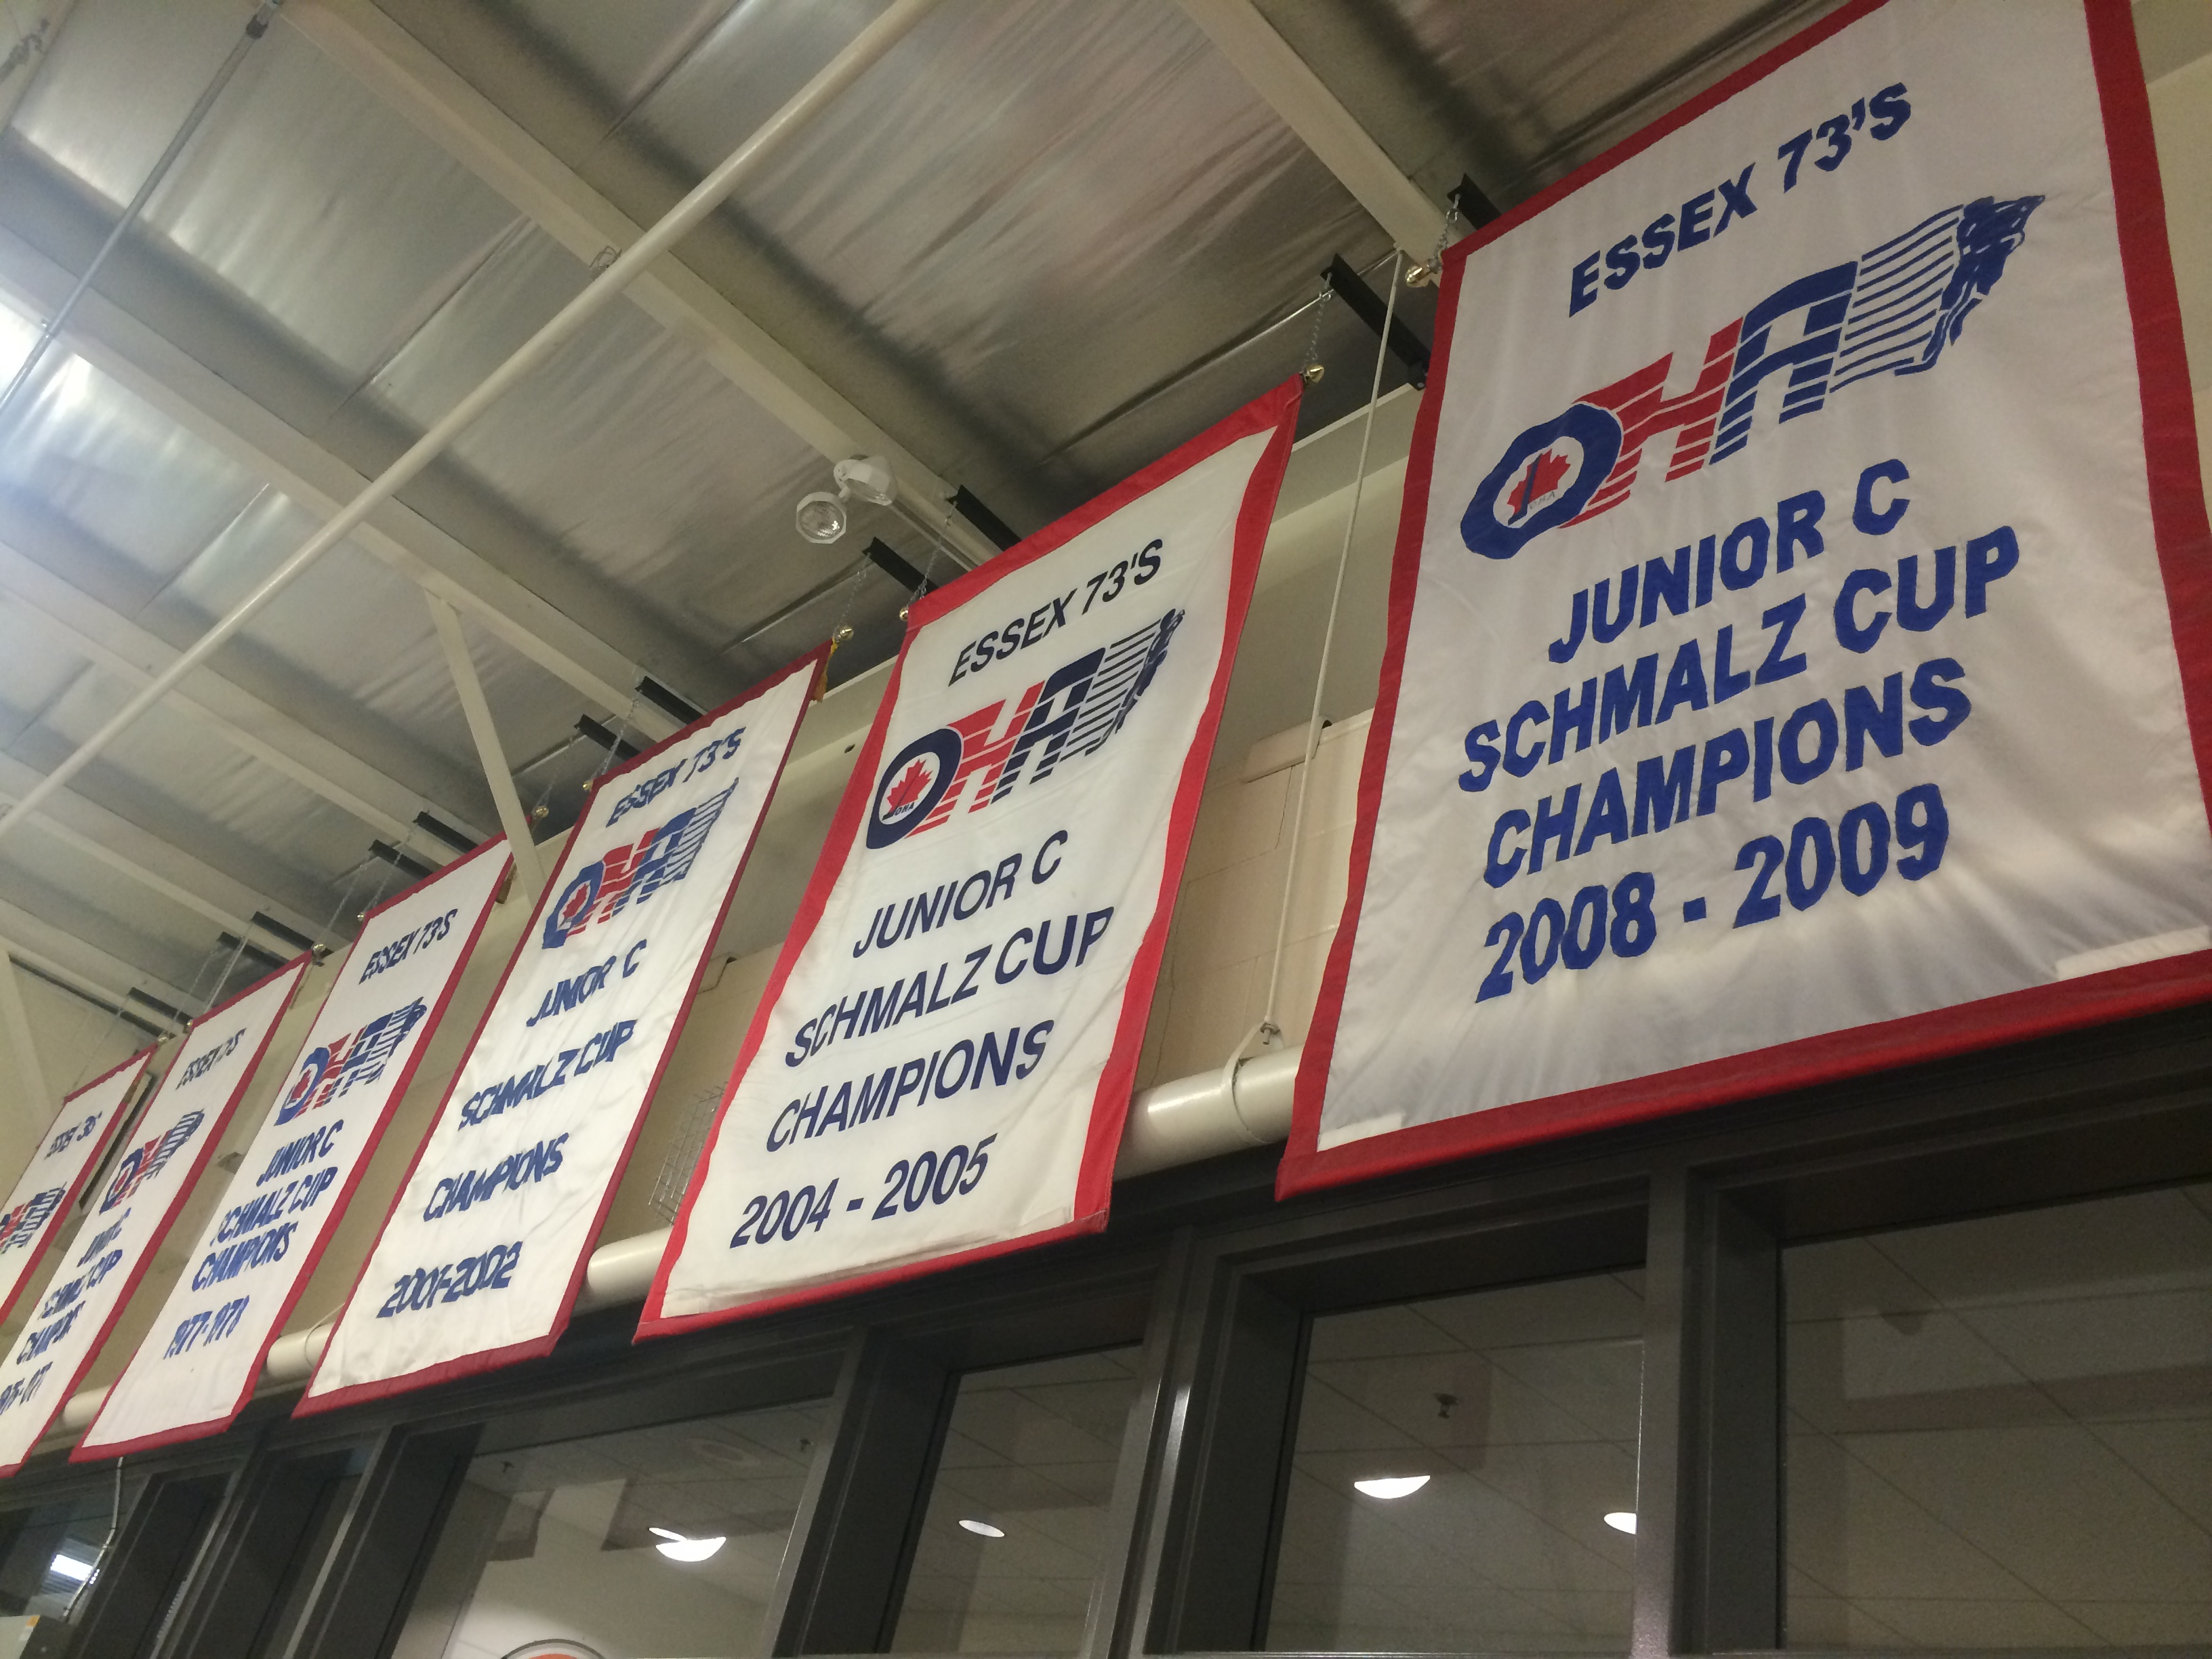 Schmalz Cup banners hanging at the Essex Centre Sports Complex. (Photo by Ricardo Veneza)